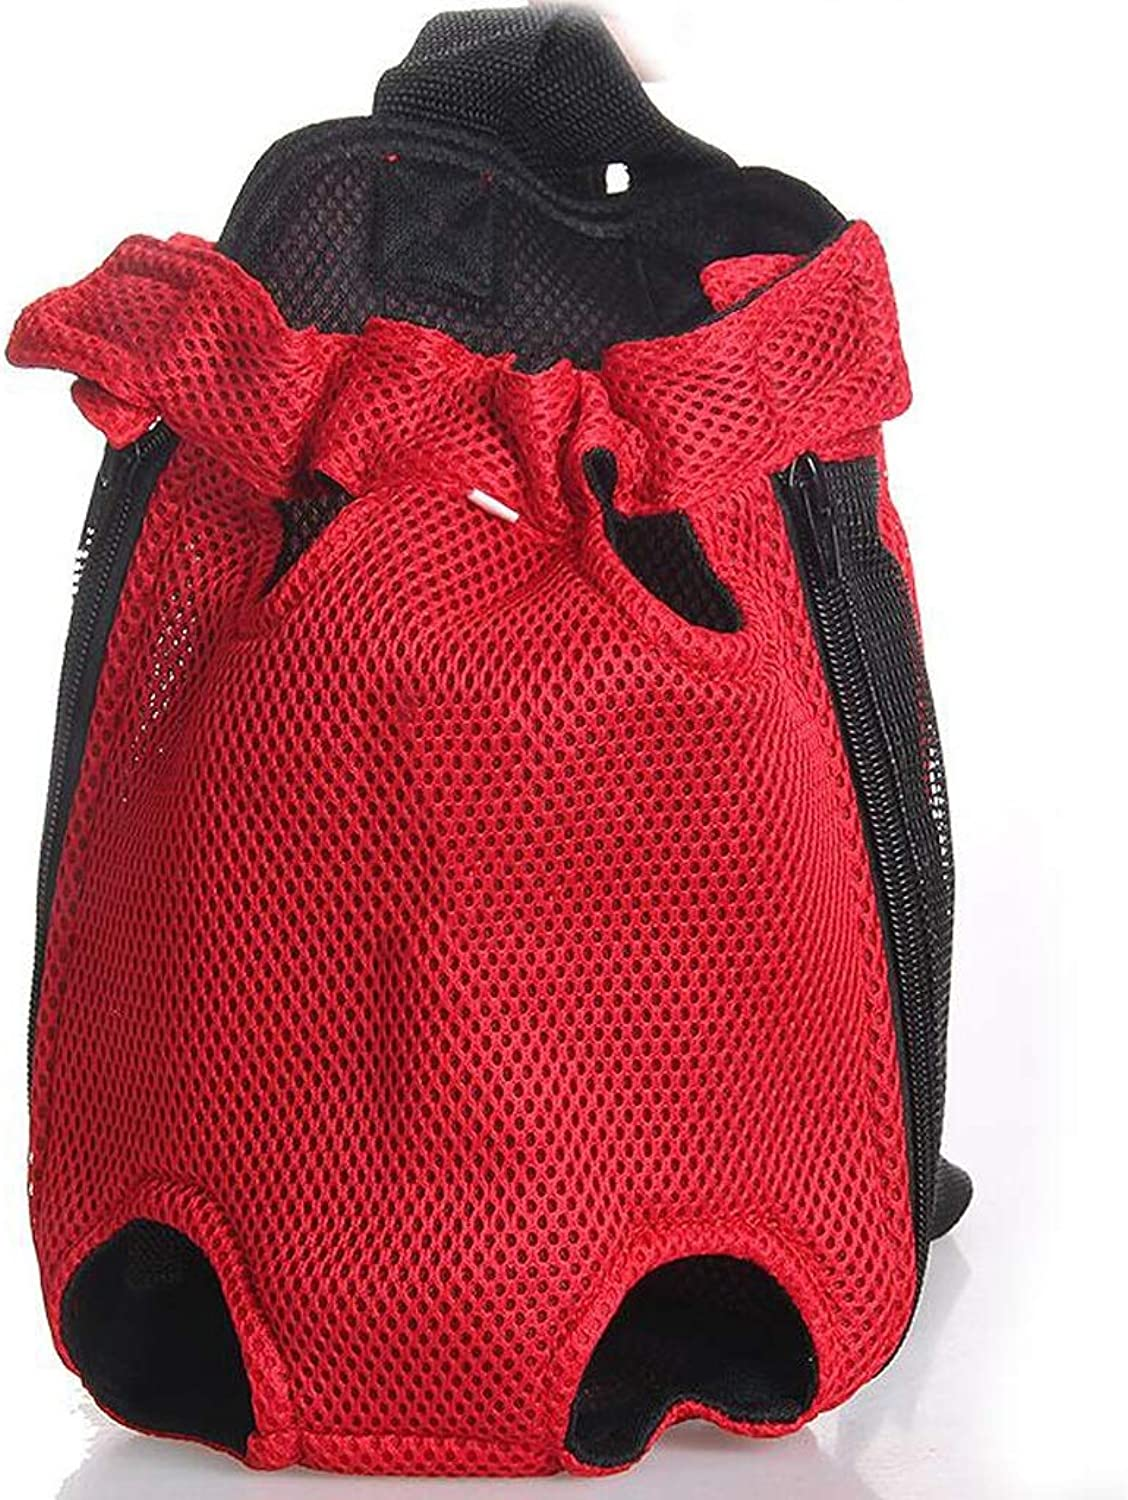 FJH Pet Chest Pack Dog Travel Out Portable Shoulder Bag Teddy Dog Cat Small Dog Universal Breathable Backpack (color   Red)